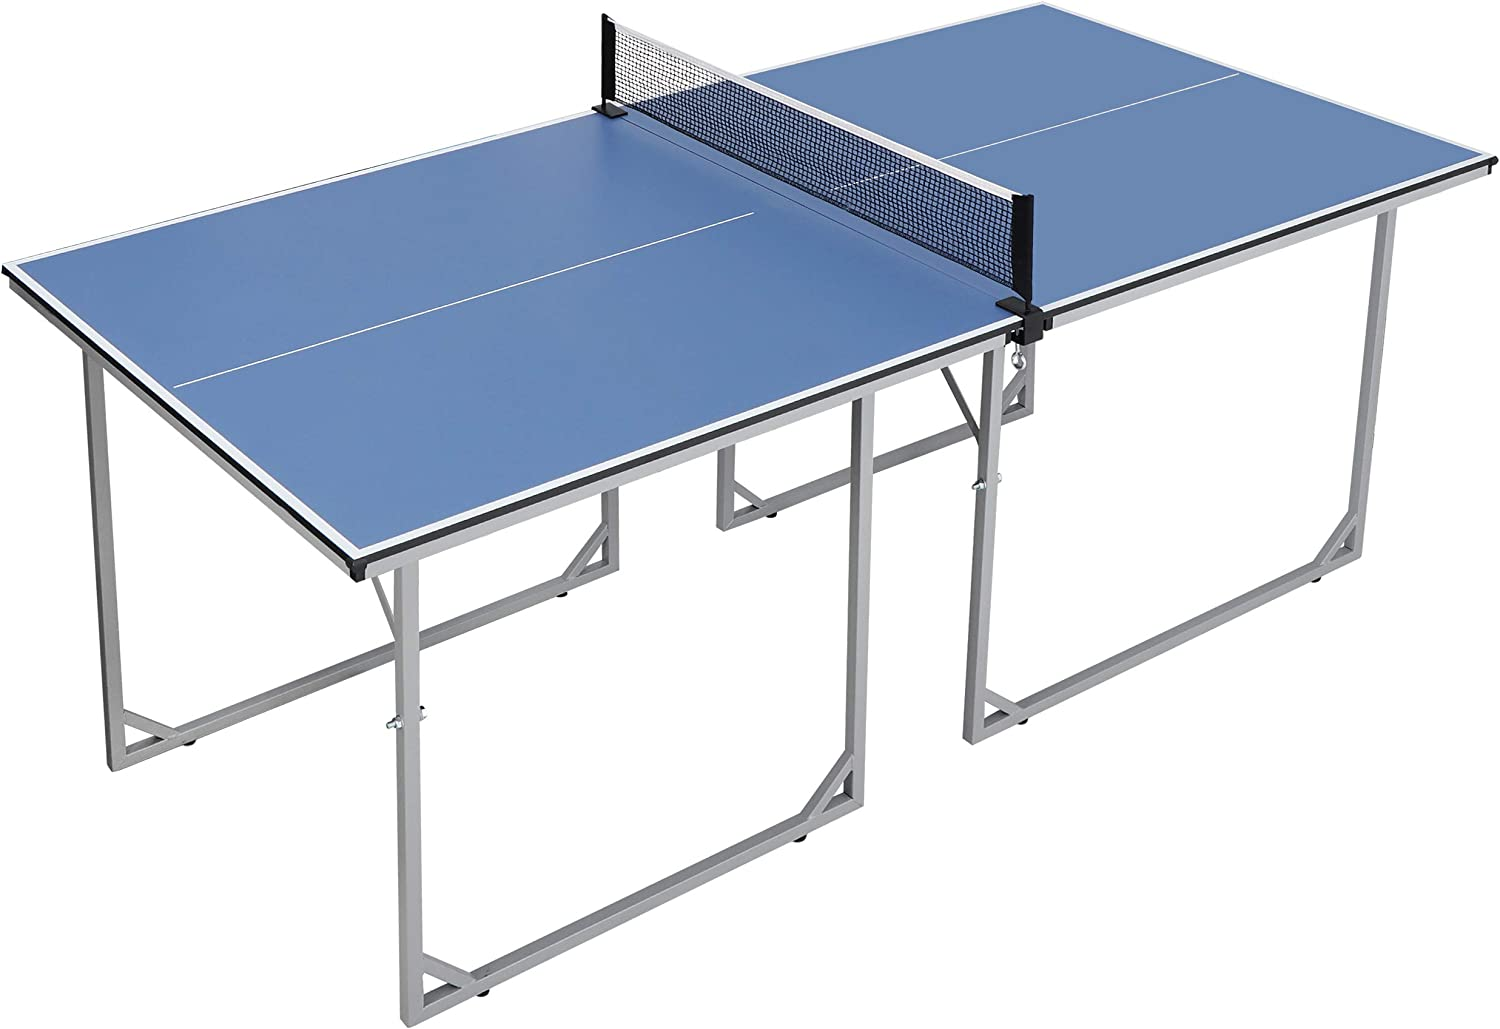 Amazon Com F2c 6 X3 Foldable Ping Pong Table With Net Instant Set Up Table Tennis Table Compact Midsize Regulation Height For Indoor Outdoor Sports Outdoors